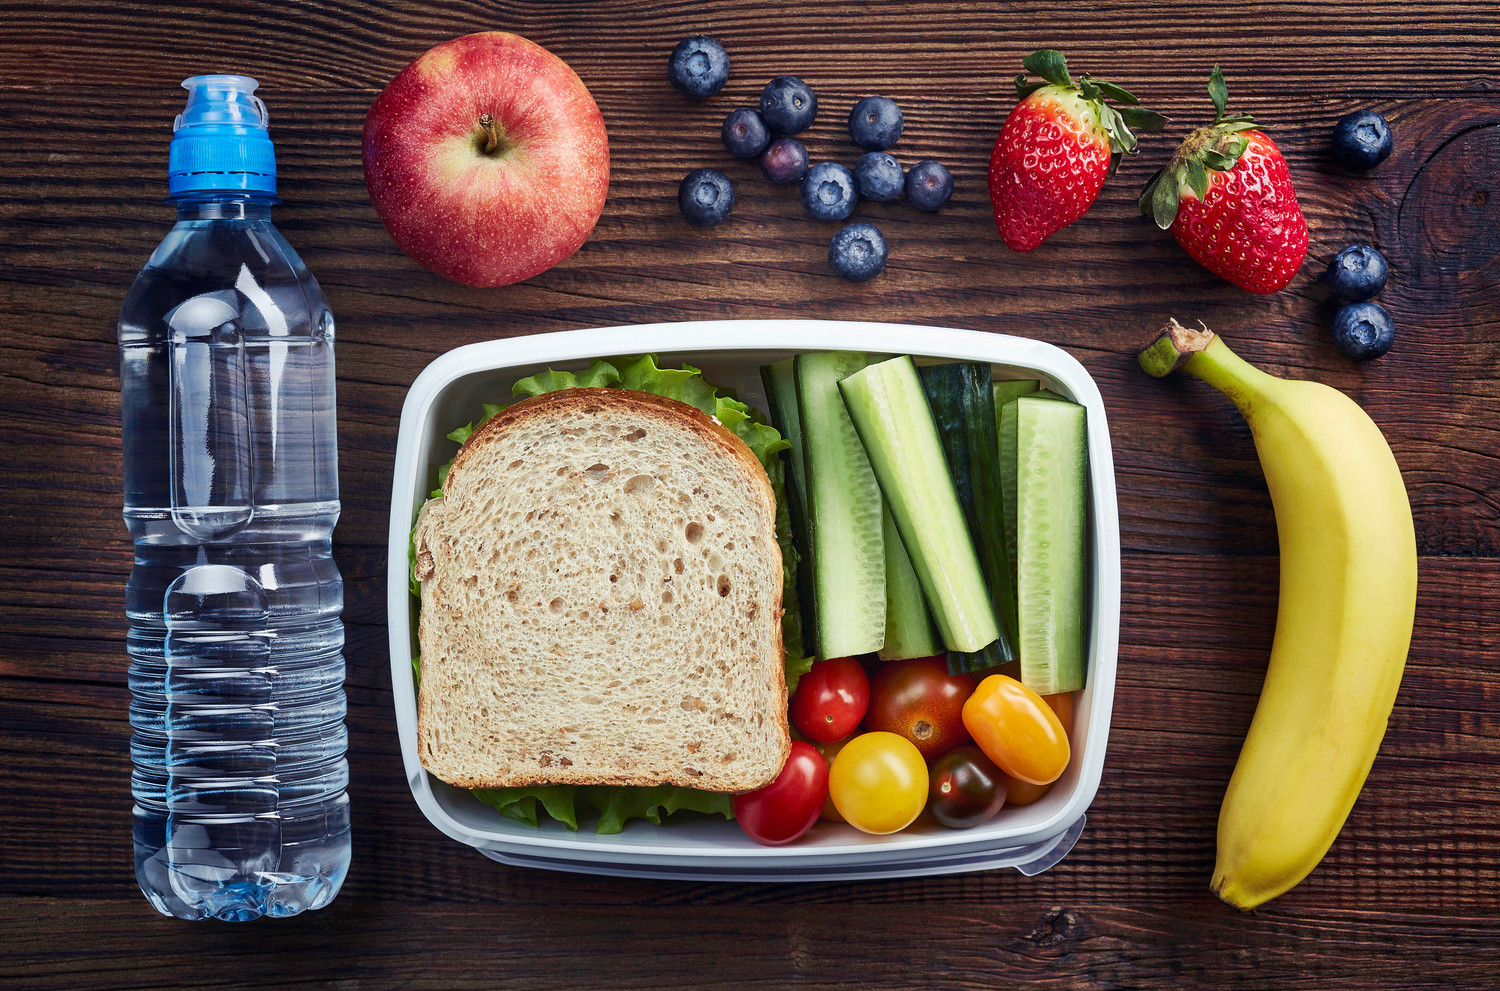 Healthy Food For School Lunches  Ways for Parents to Improve Their Children's School